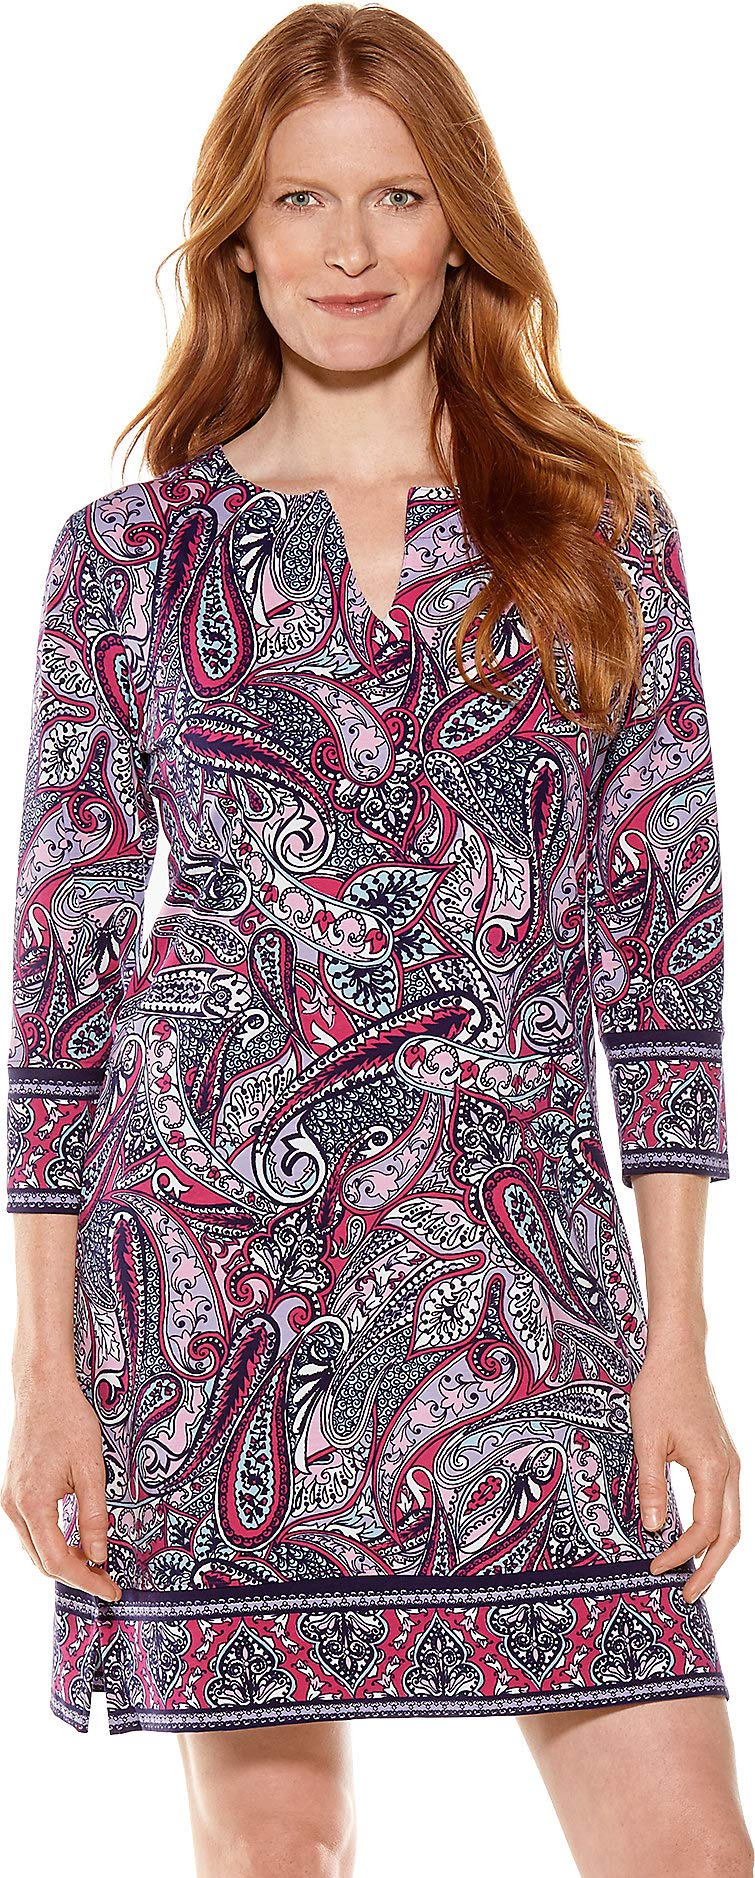 Coolibar UPF 50+ Women's Oceanside Tunic Dress - Sun Protective (XX-Large- Pink Lively Paisley)